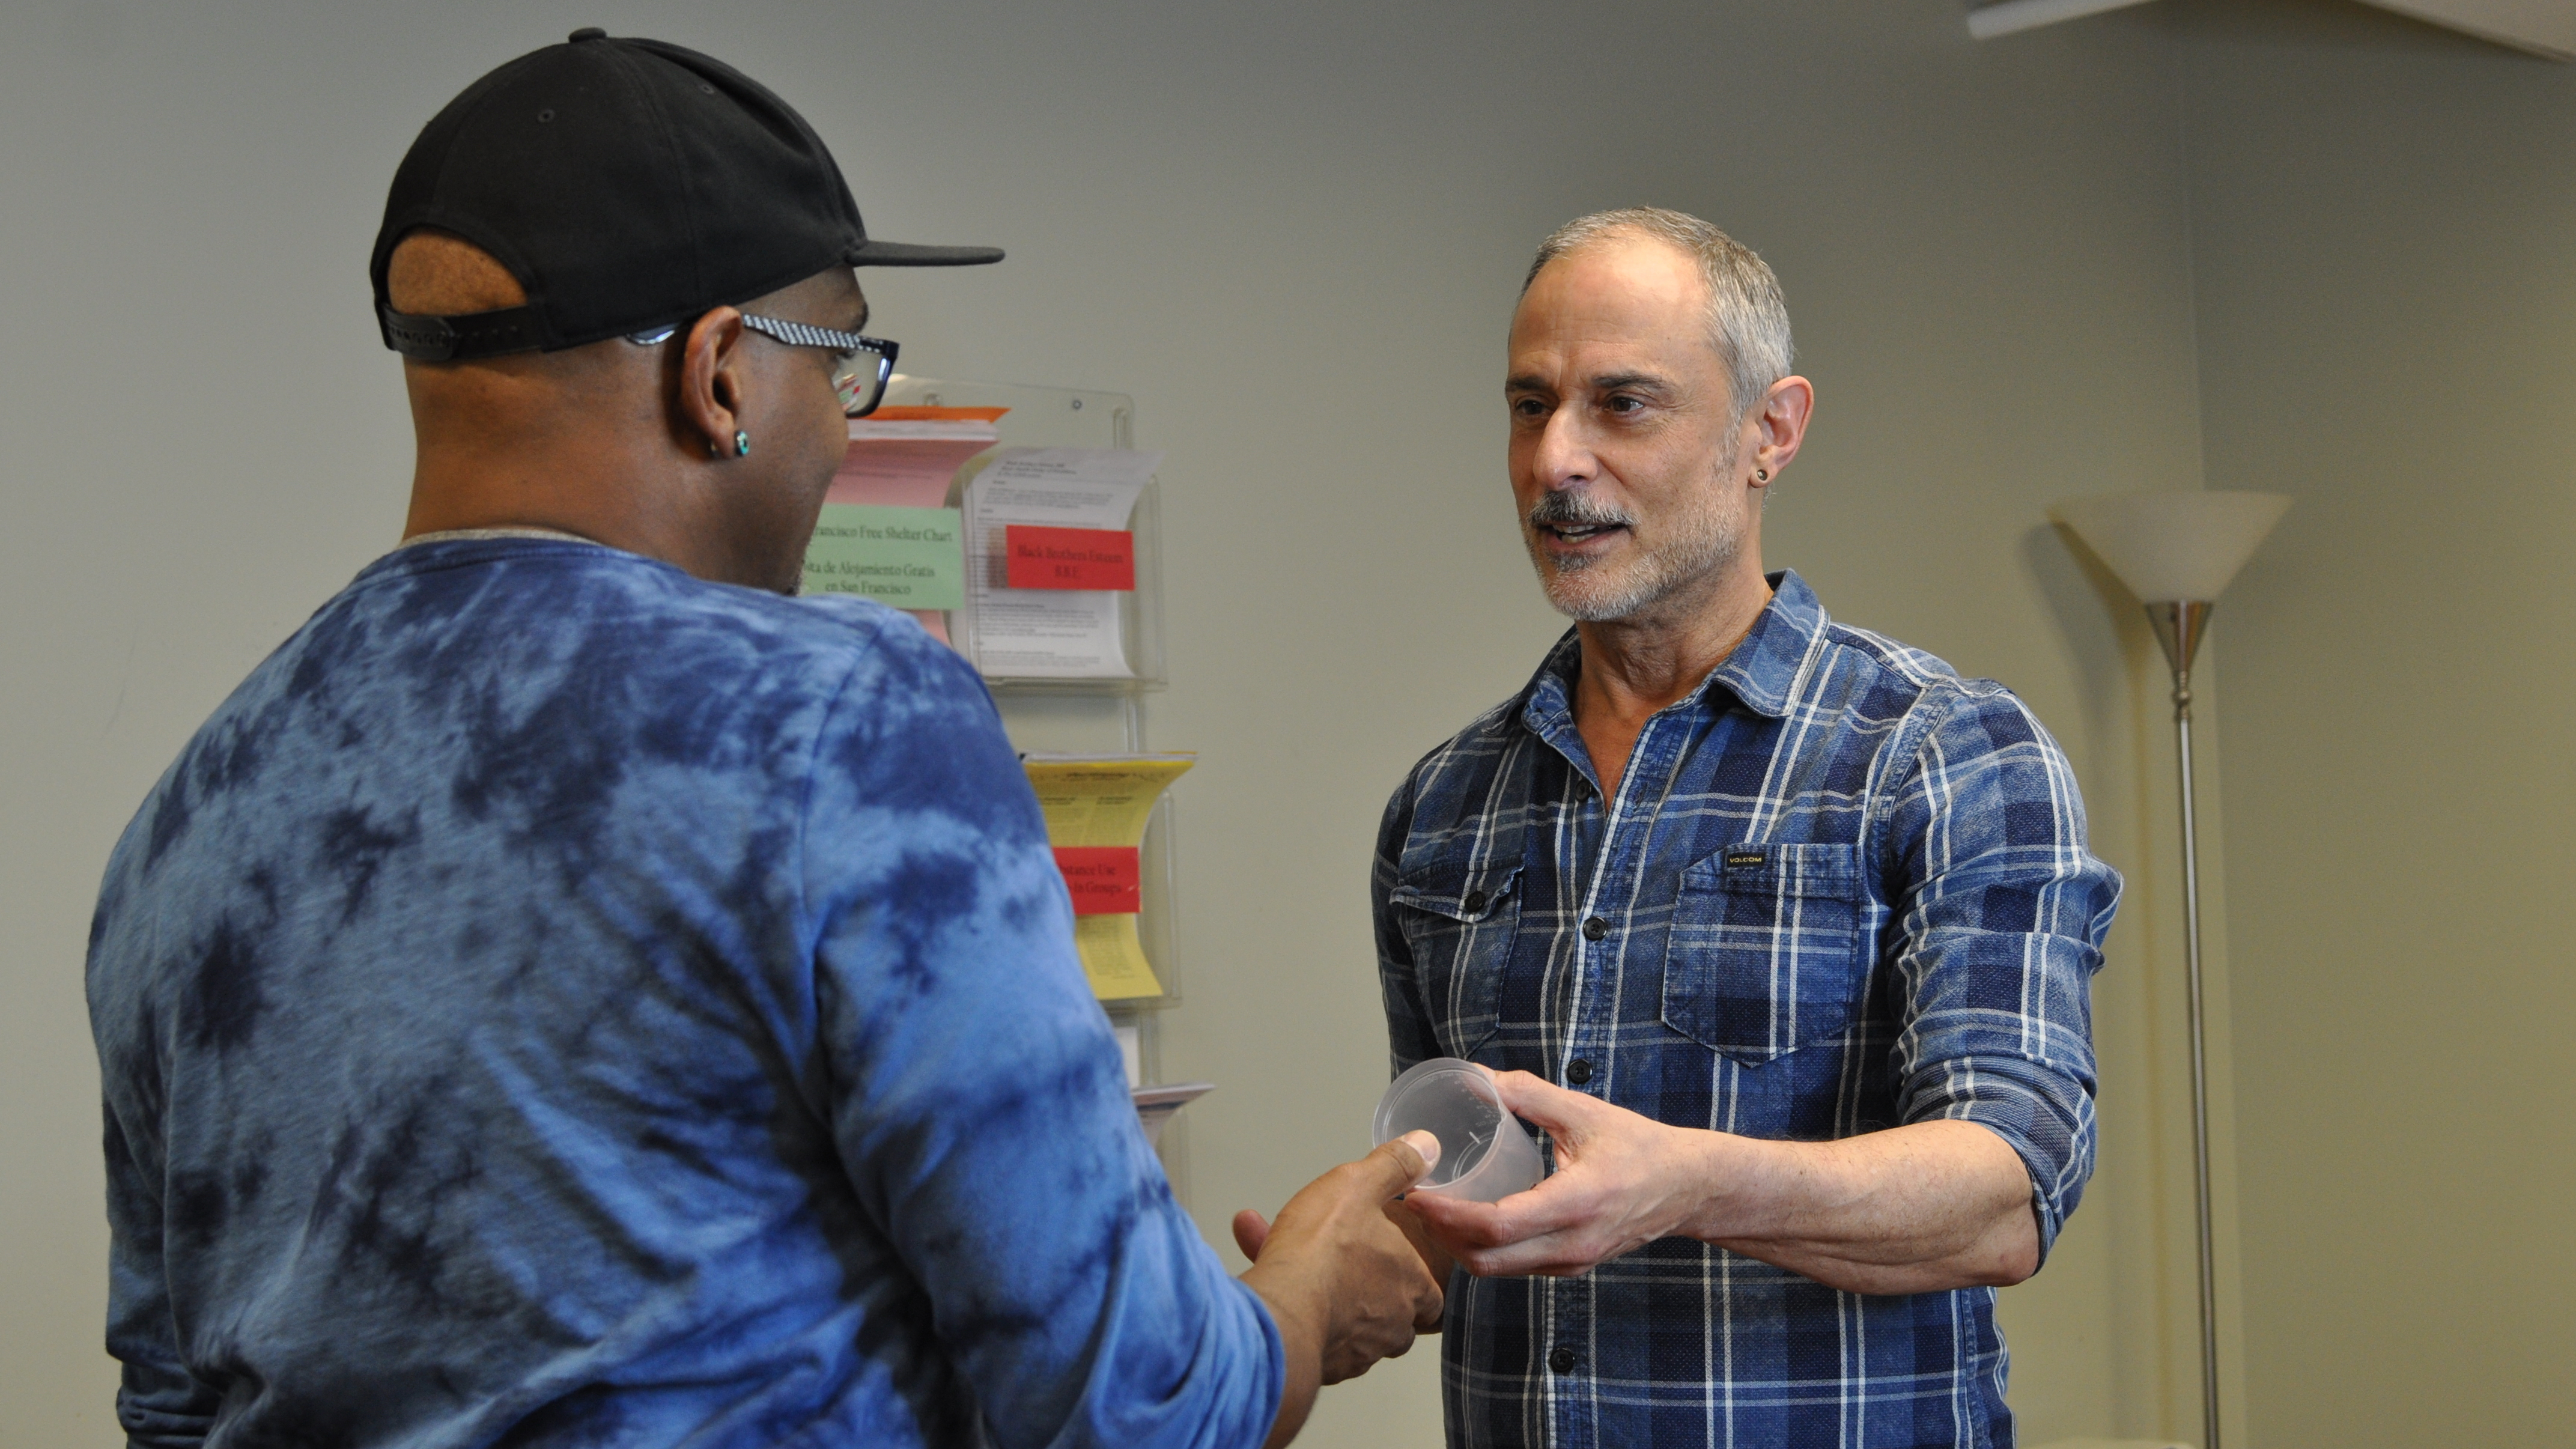 """At the San Francisco AIDS Foundation, staff members Tyrone Clifford (left) and Rick Andrews (right) demonstrate how a contingency management visit typically begins, with a participant picking up a specimen cup for a urine sample. If the sample tests negative for meth or cocaine use, the participant has an incentive dollar amount added to their """"bank"""" which can later be traded for a gift card."""